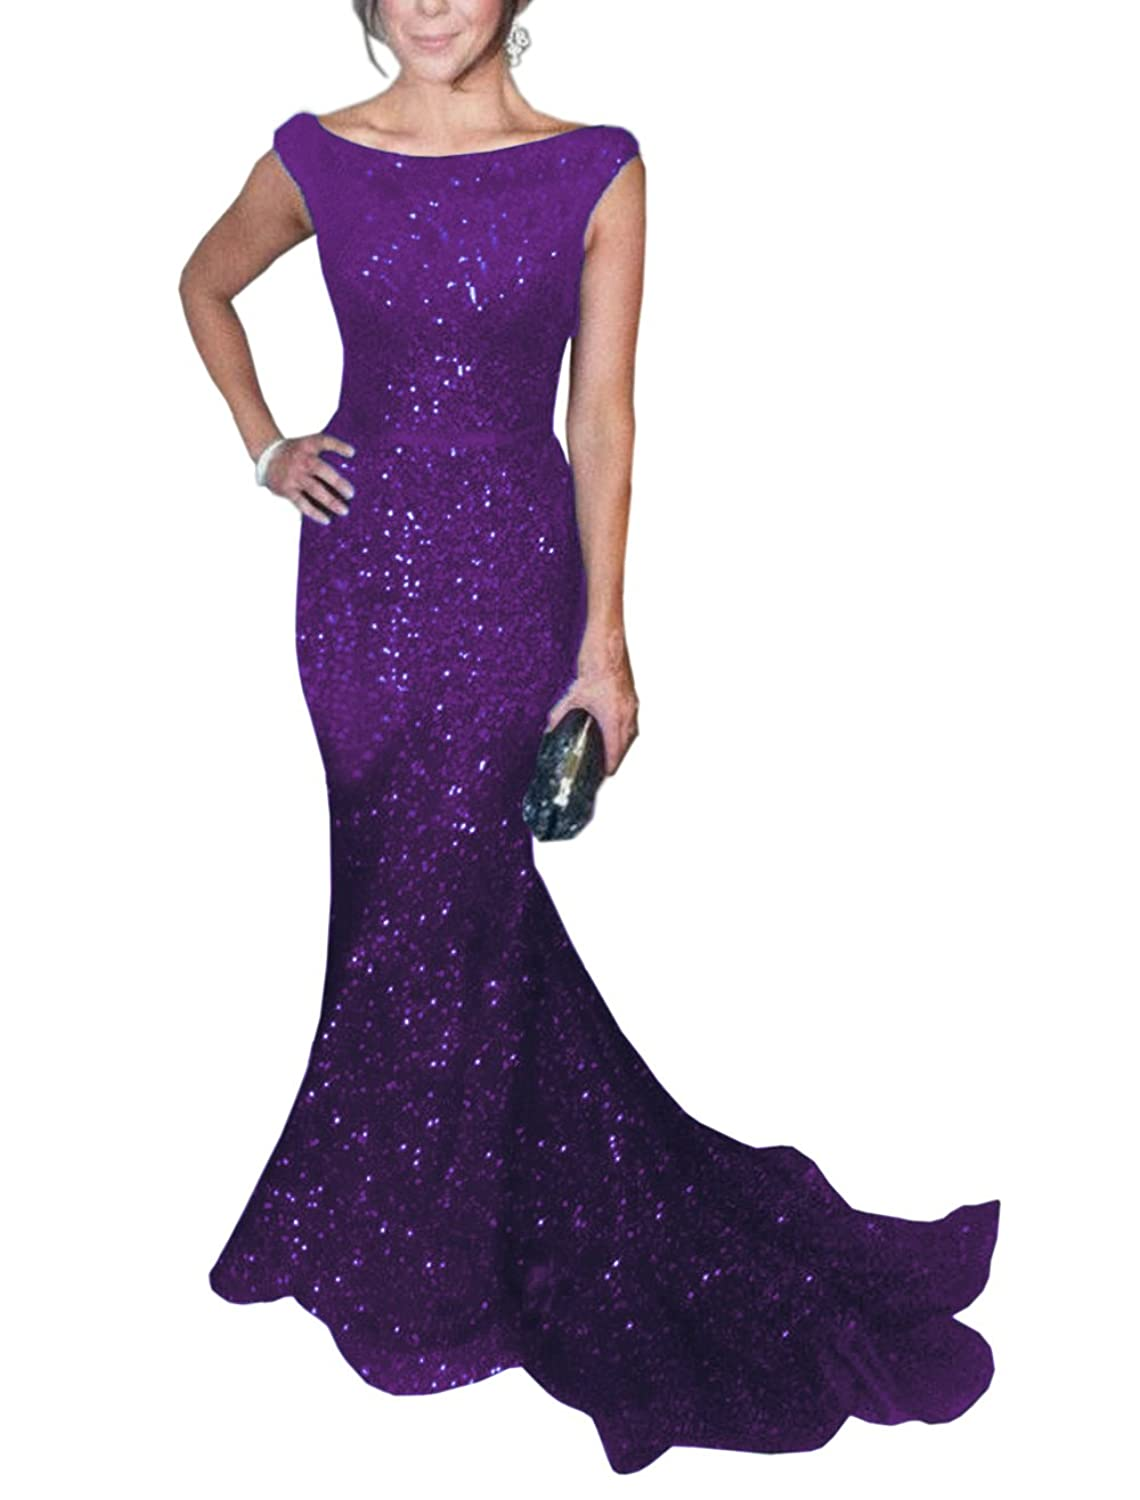 ef9ba71f7c5 1,Main Fabric:Sequin and Spandex;Inner Line Fabric:Elastic  Spandex;Silhouette:Mermaid;Cap sleeves;Floor-Length Gown.Court Train